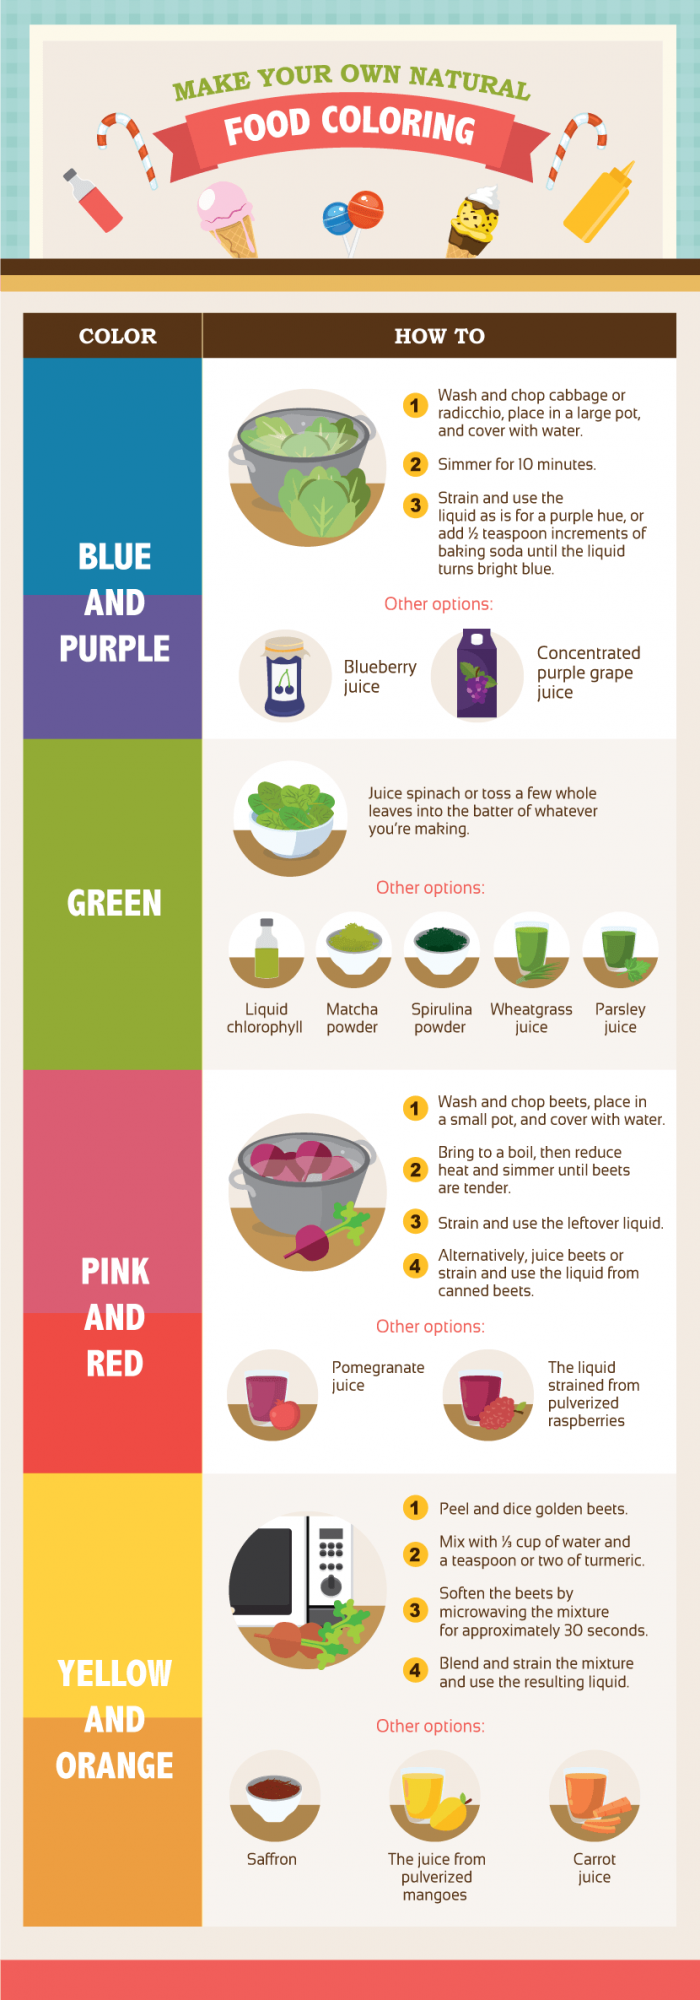 How to Make Your Own Safe Food Coloring at Home   Food & Wine